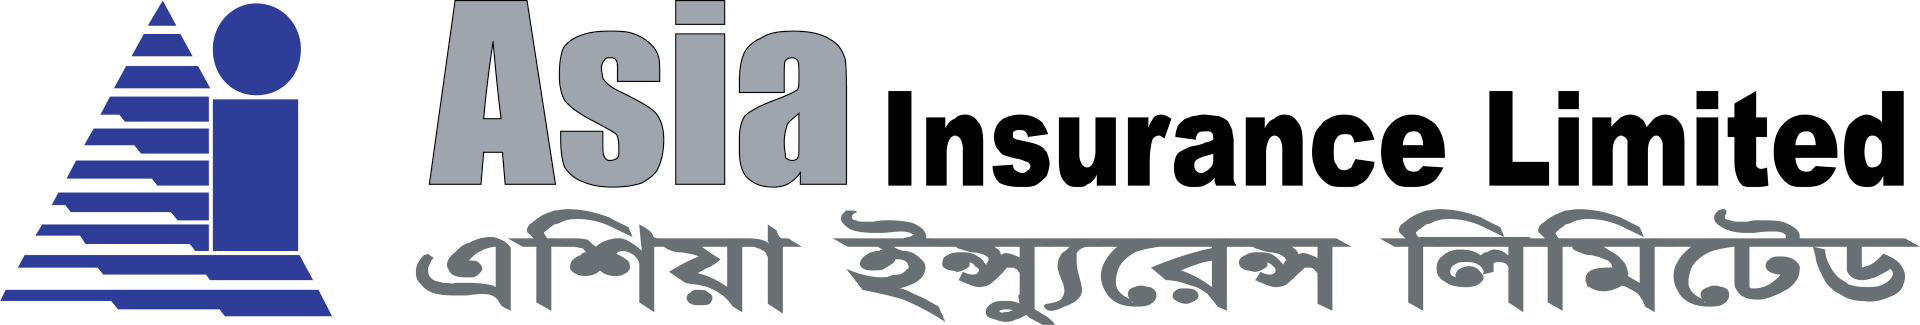 Asia Insurance Limited